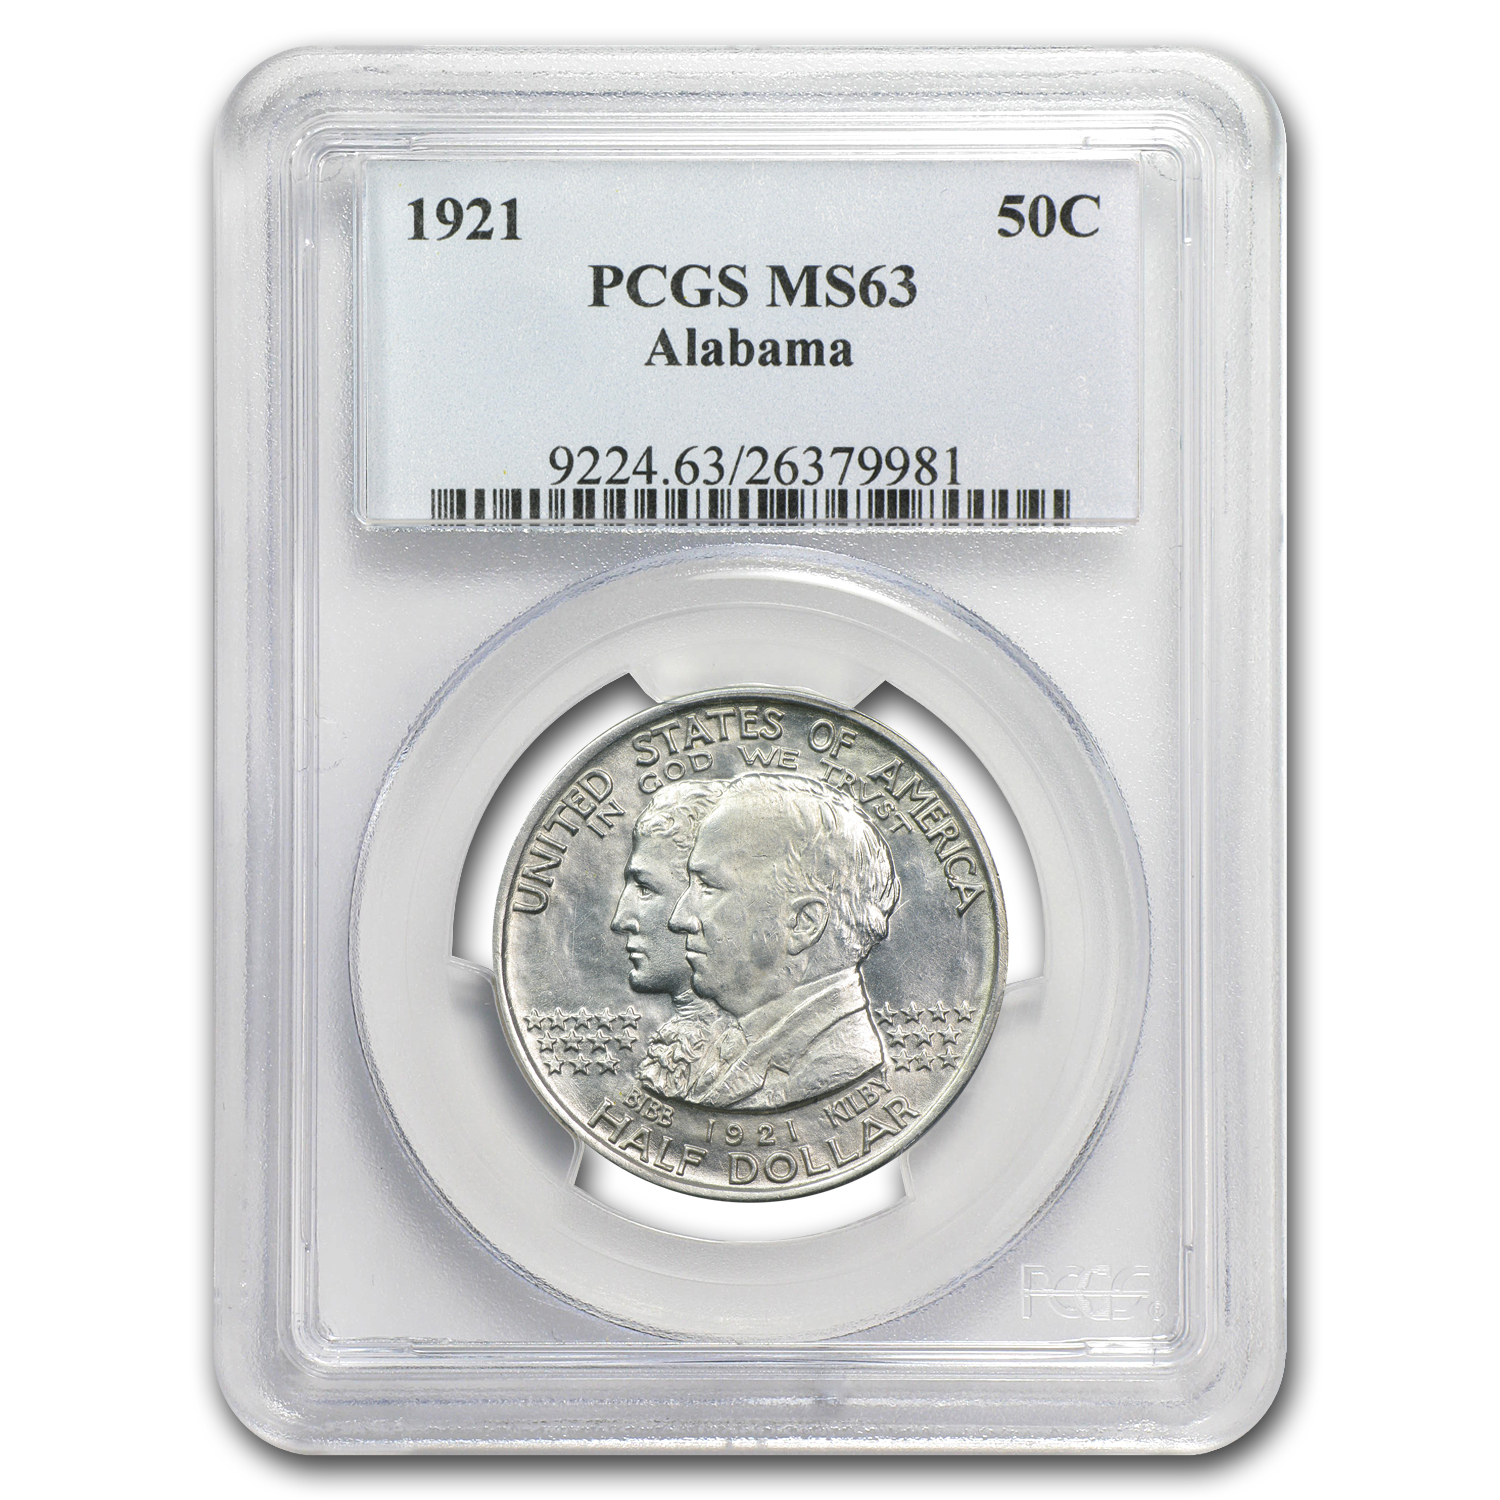 1921 Alabama MS-63 PCGS